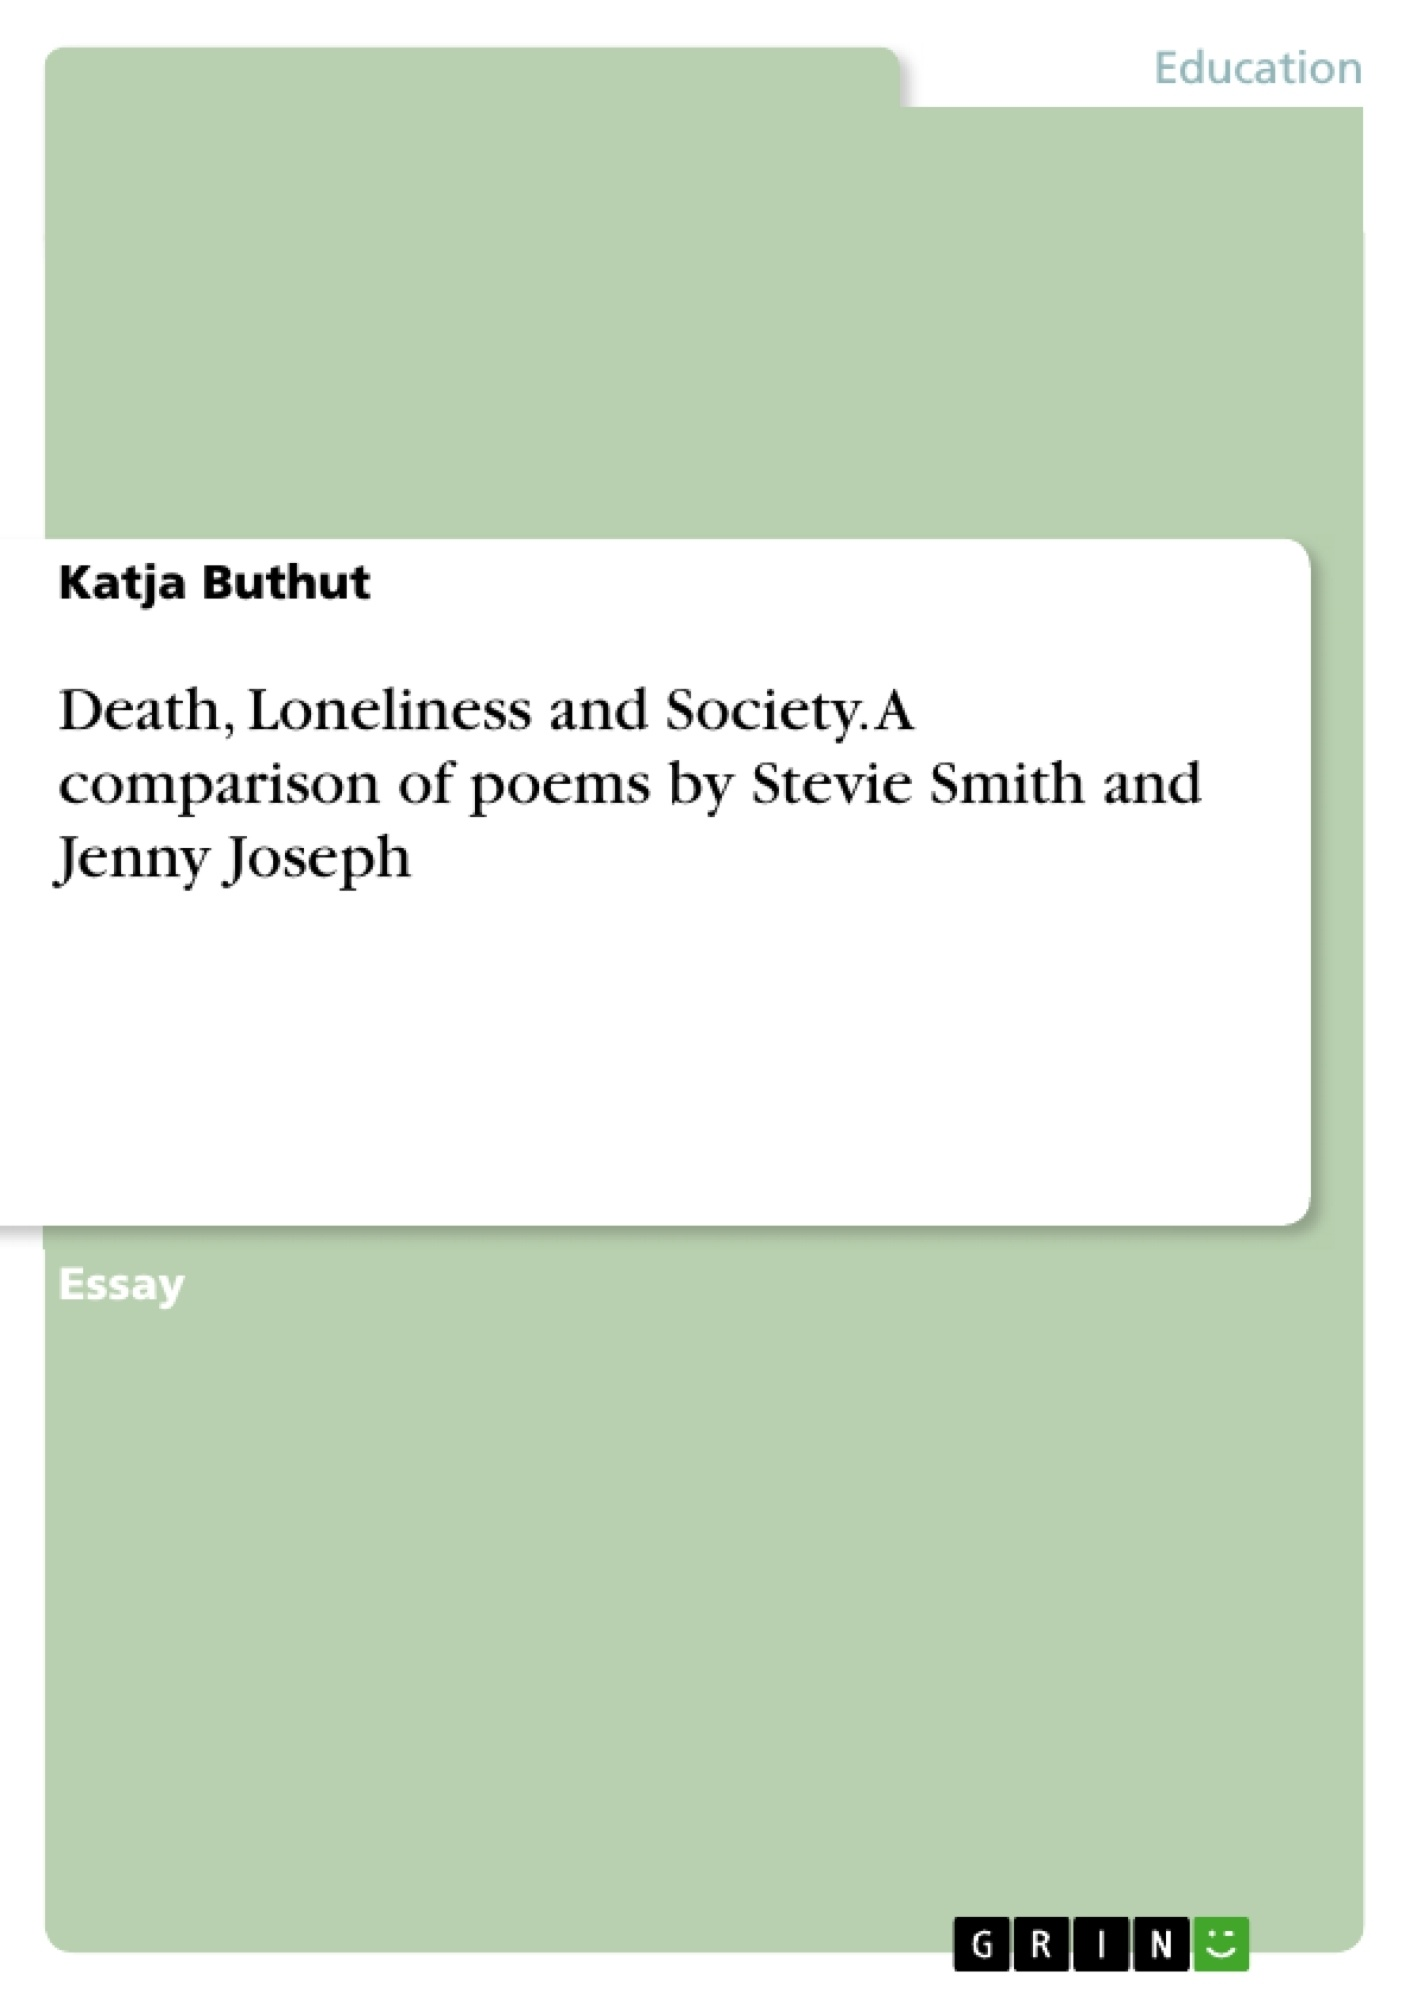 Title: Death, Loneliness and Society. A comparison of poems by Stevie Smith and Jenny Joseph